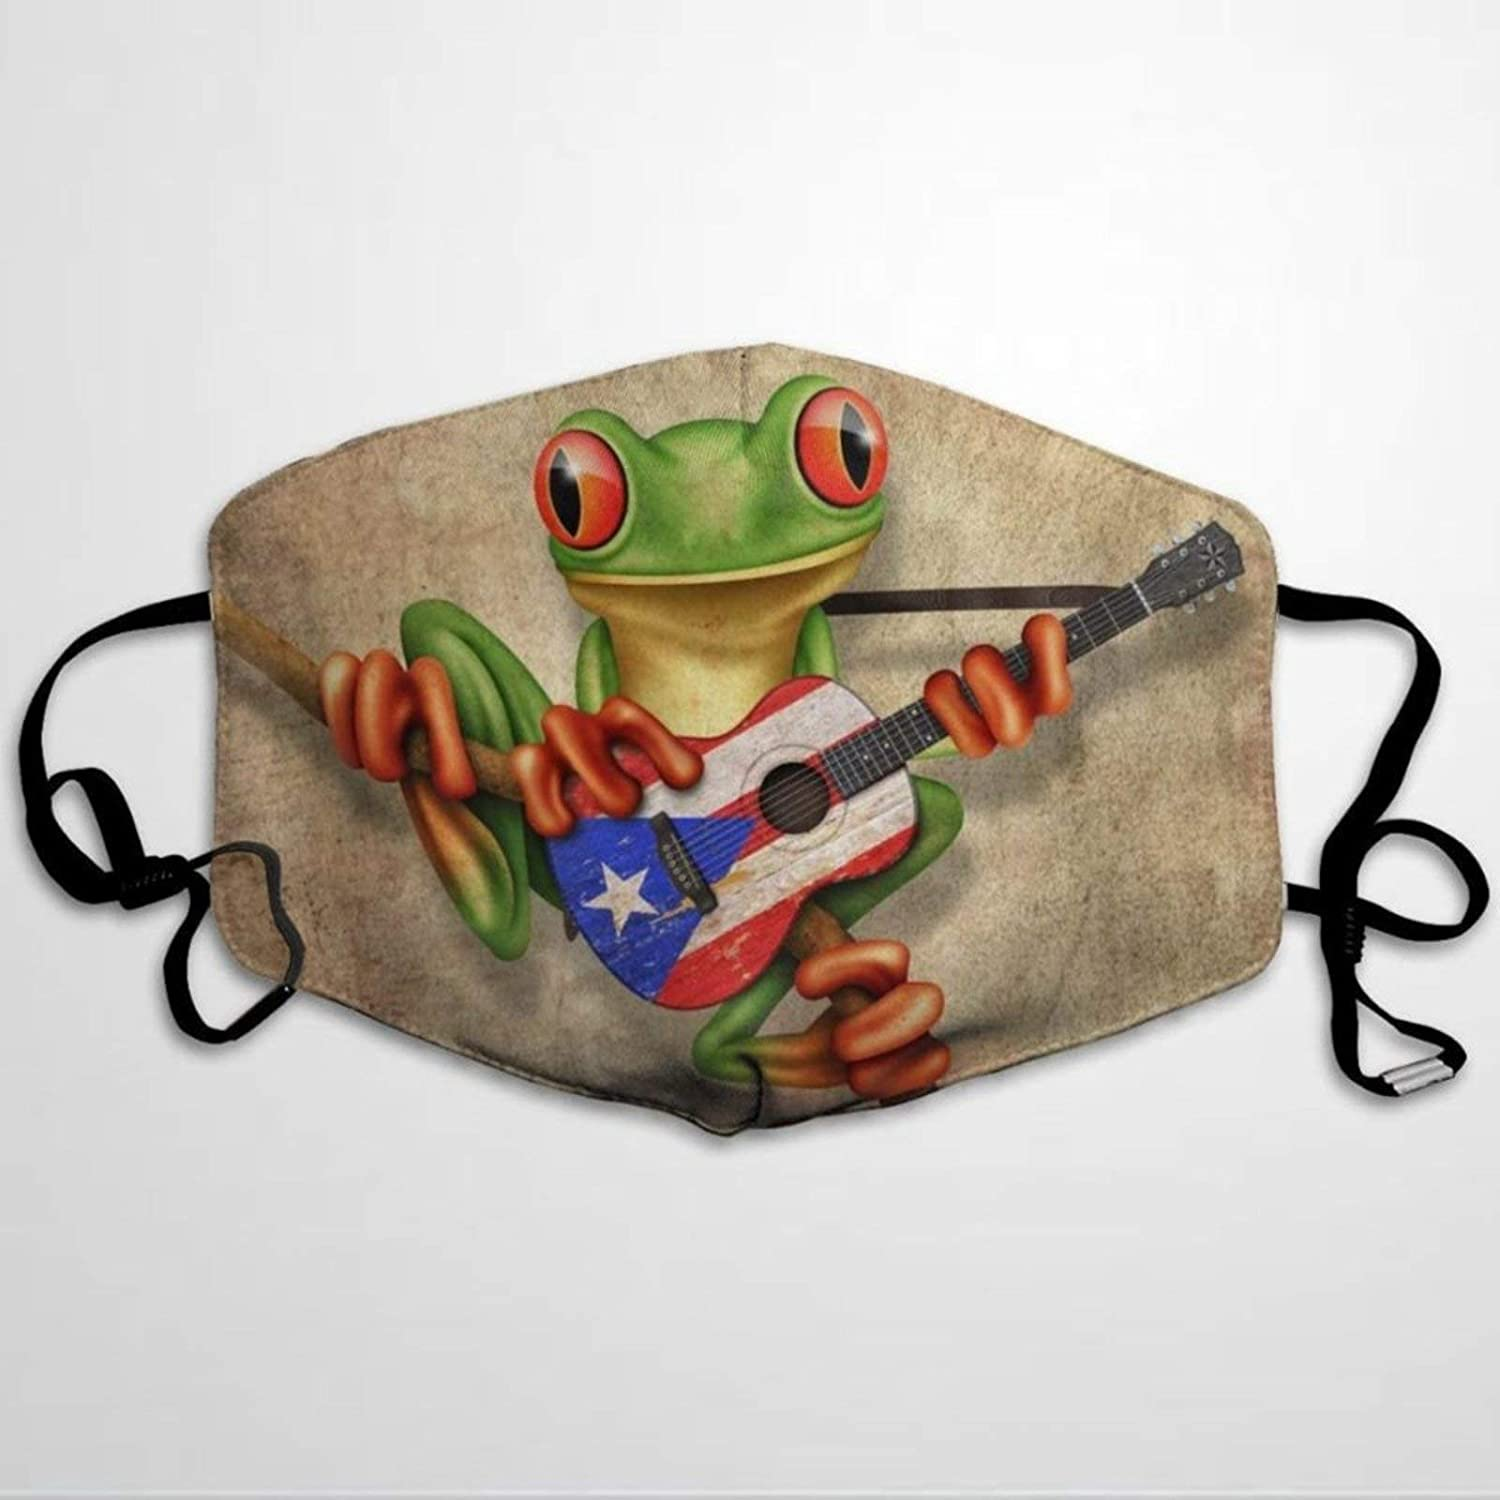 Tree Frog Playing Puerto Rico Flag Guitar Poster Mouth Cover Sleeve Guard With Filter , Reusable Protective & Washable Cover, Fashion Breathable Cover Suitable for Men, Women and The Elderly.